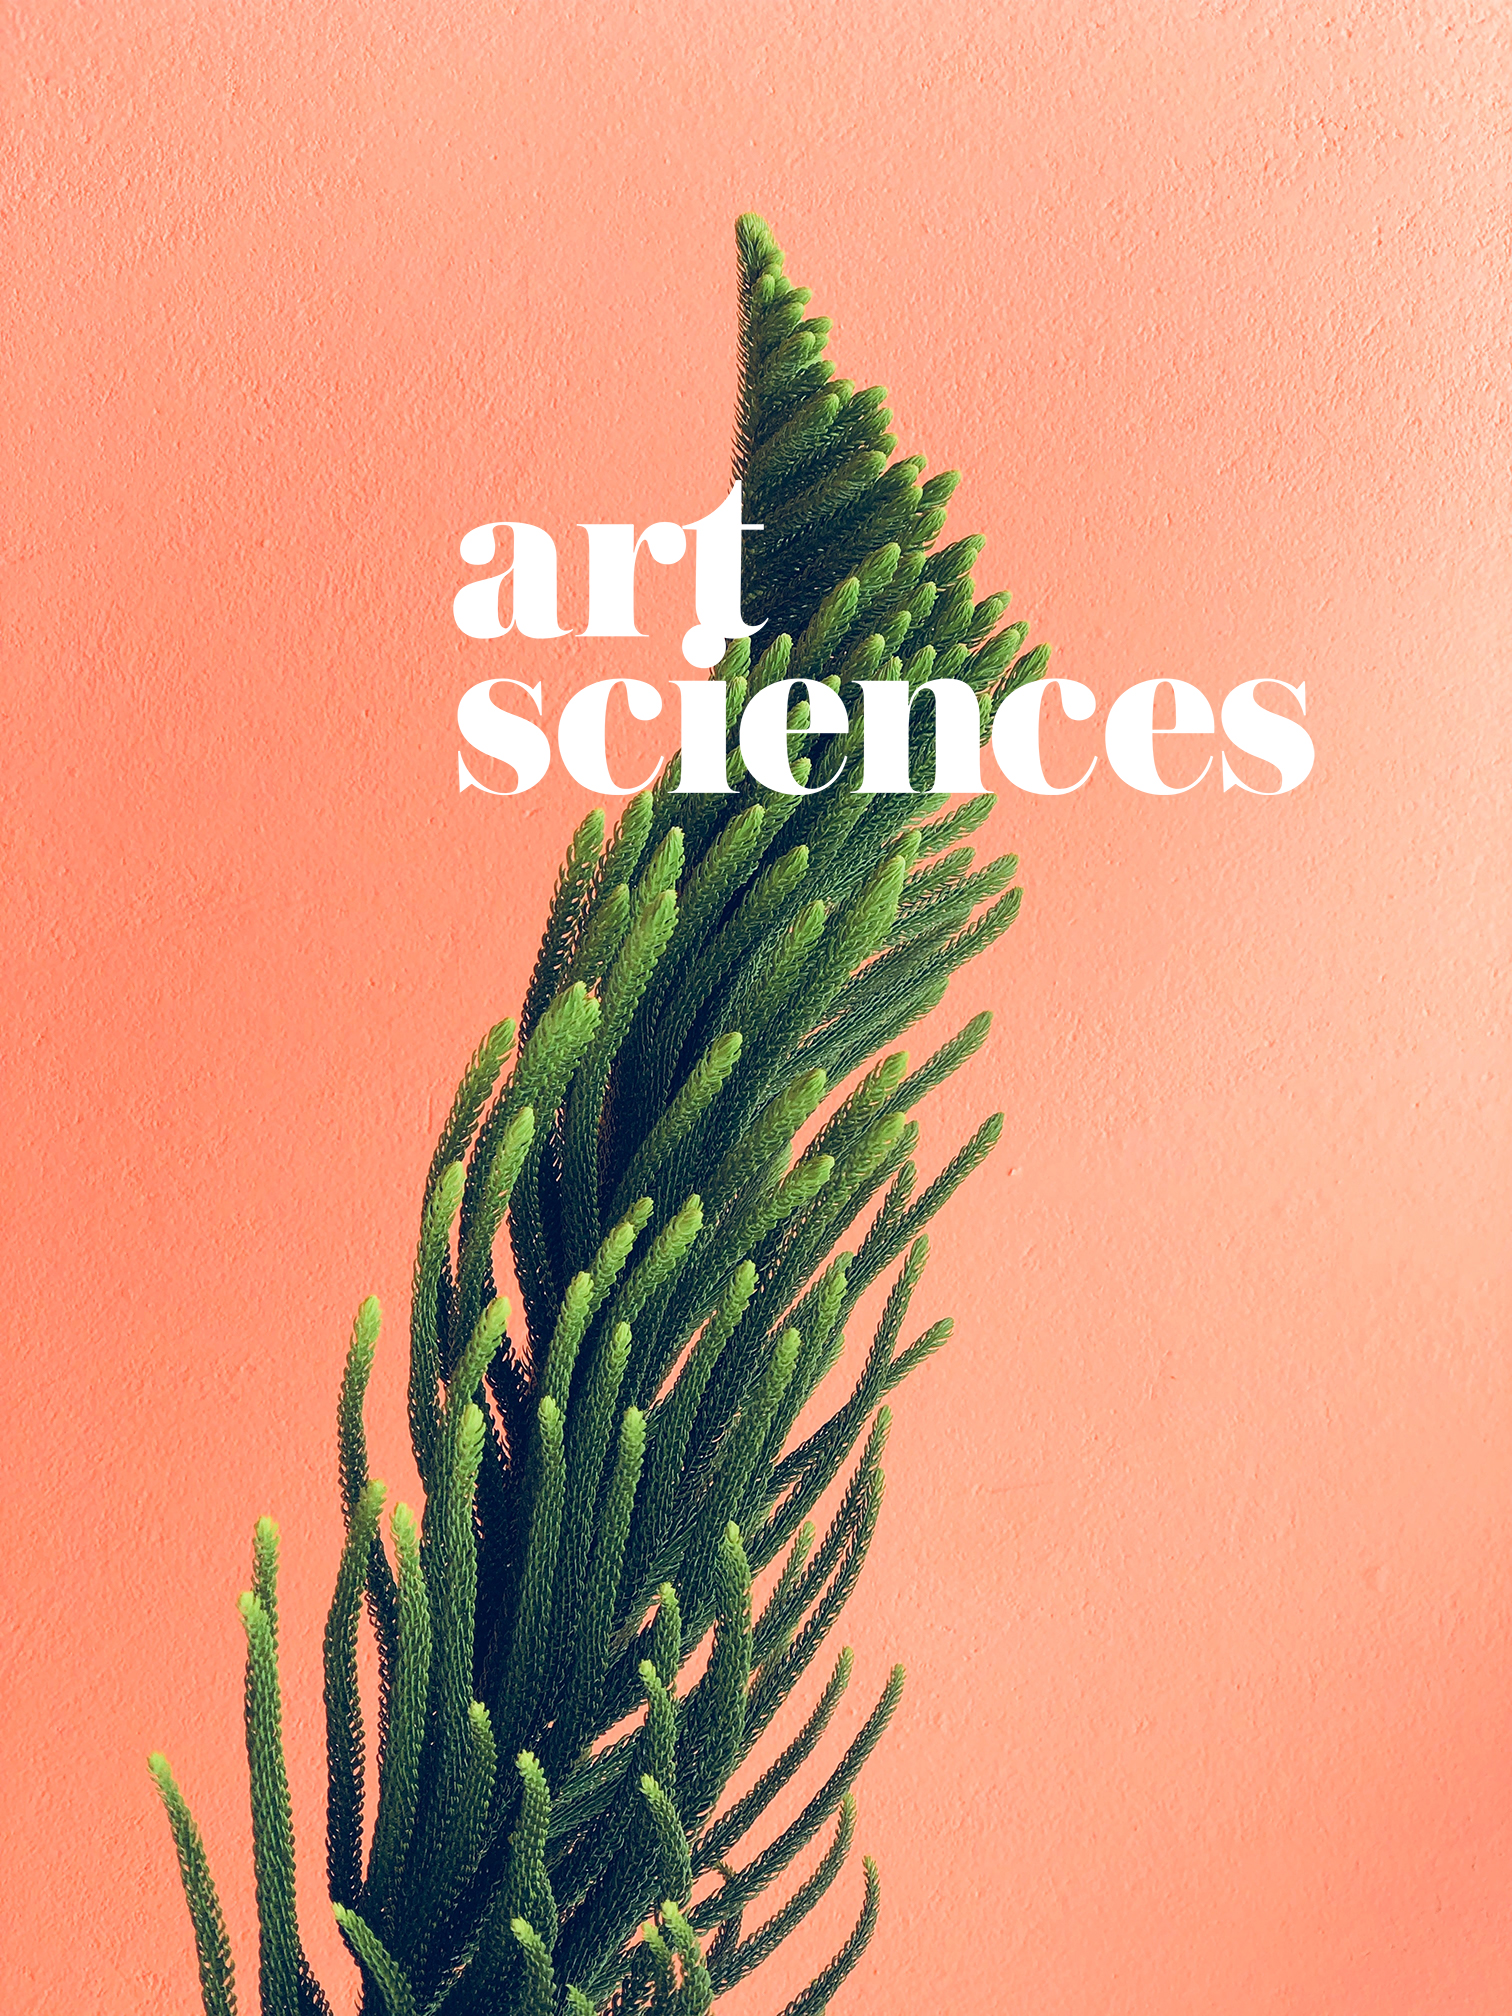 Art Sciences - Generating and evaluating creative marketing concepts through the use of deep learning and predictive technologies.Learn more ➝